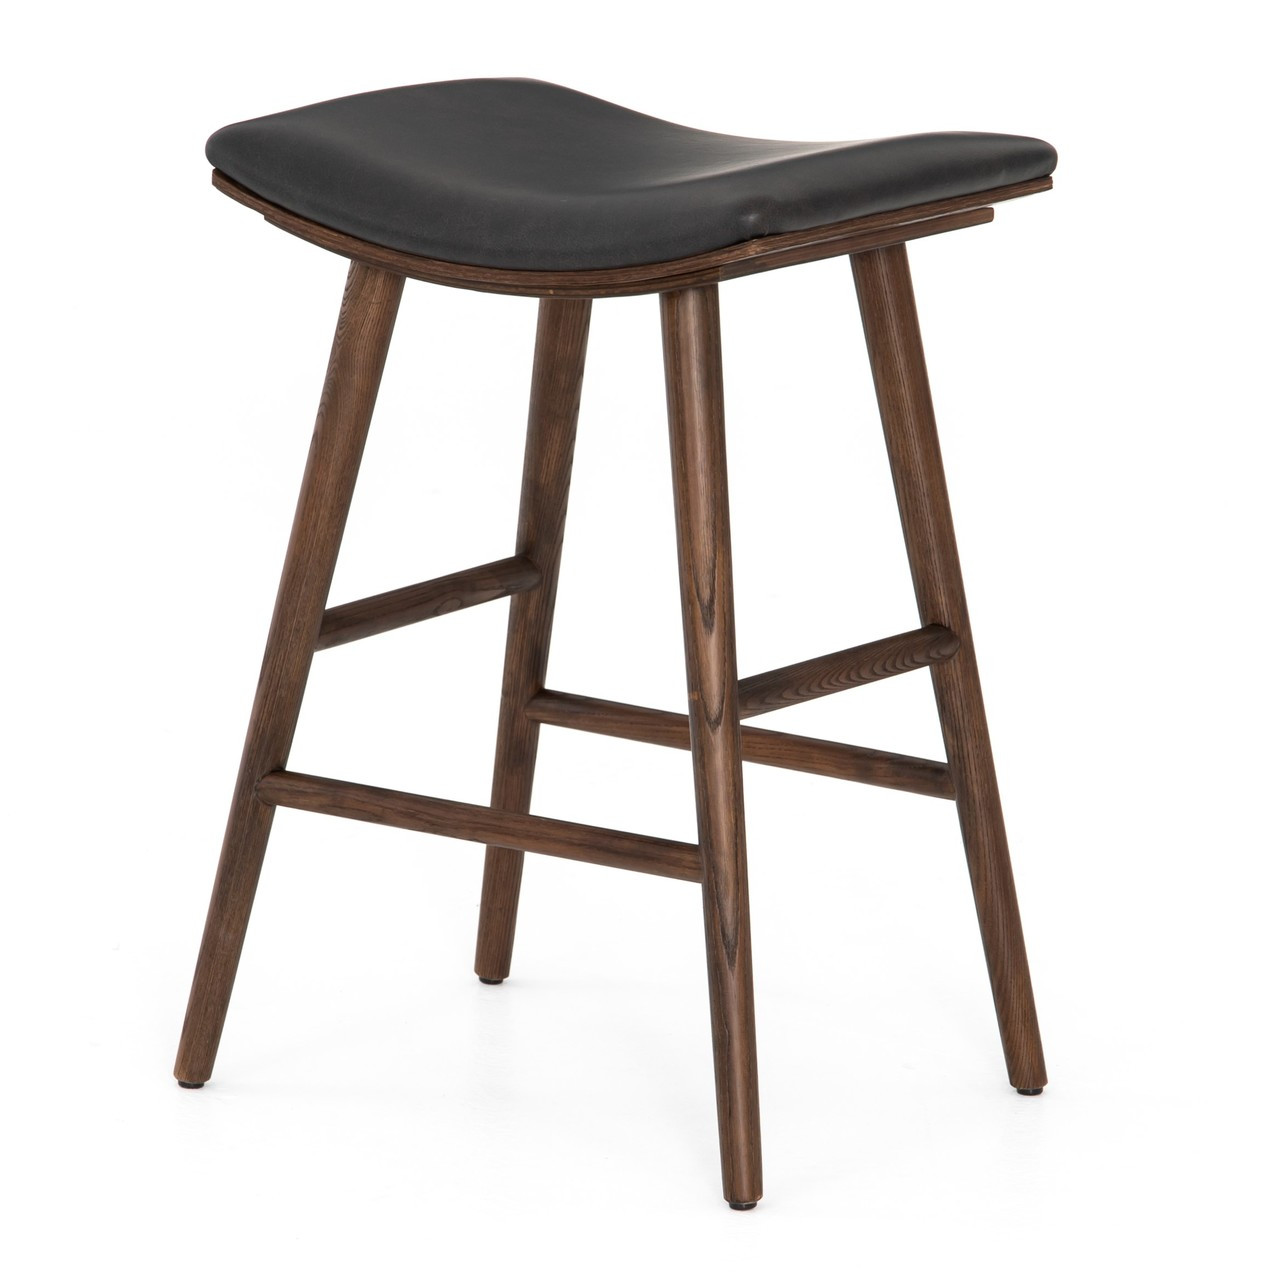 Cool Saddle Mid Century Black Leather Counter Stool Cjindustries Chair Design For Home Cjindustriesco